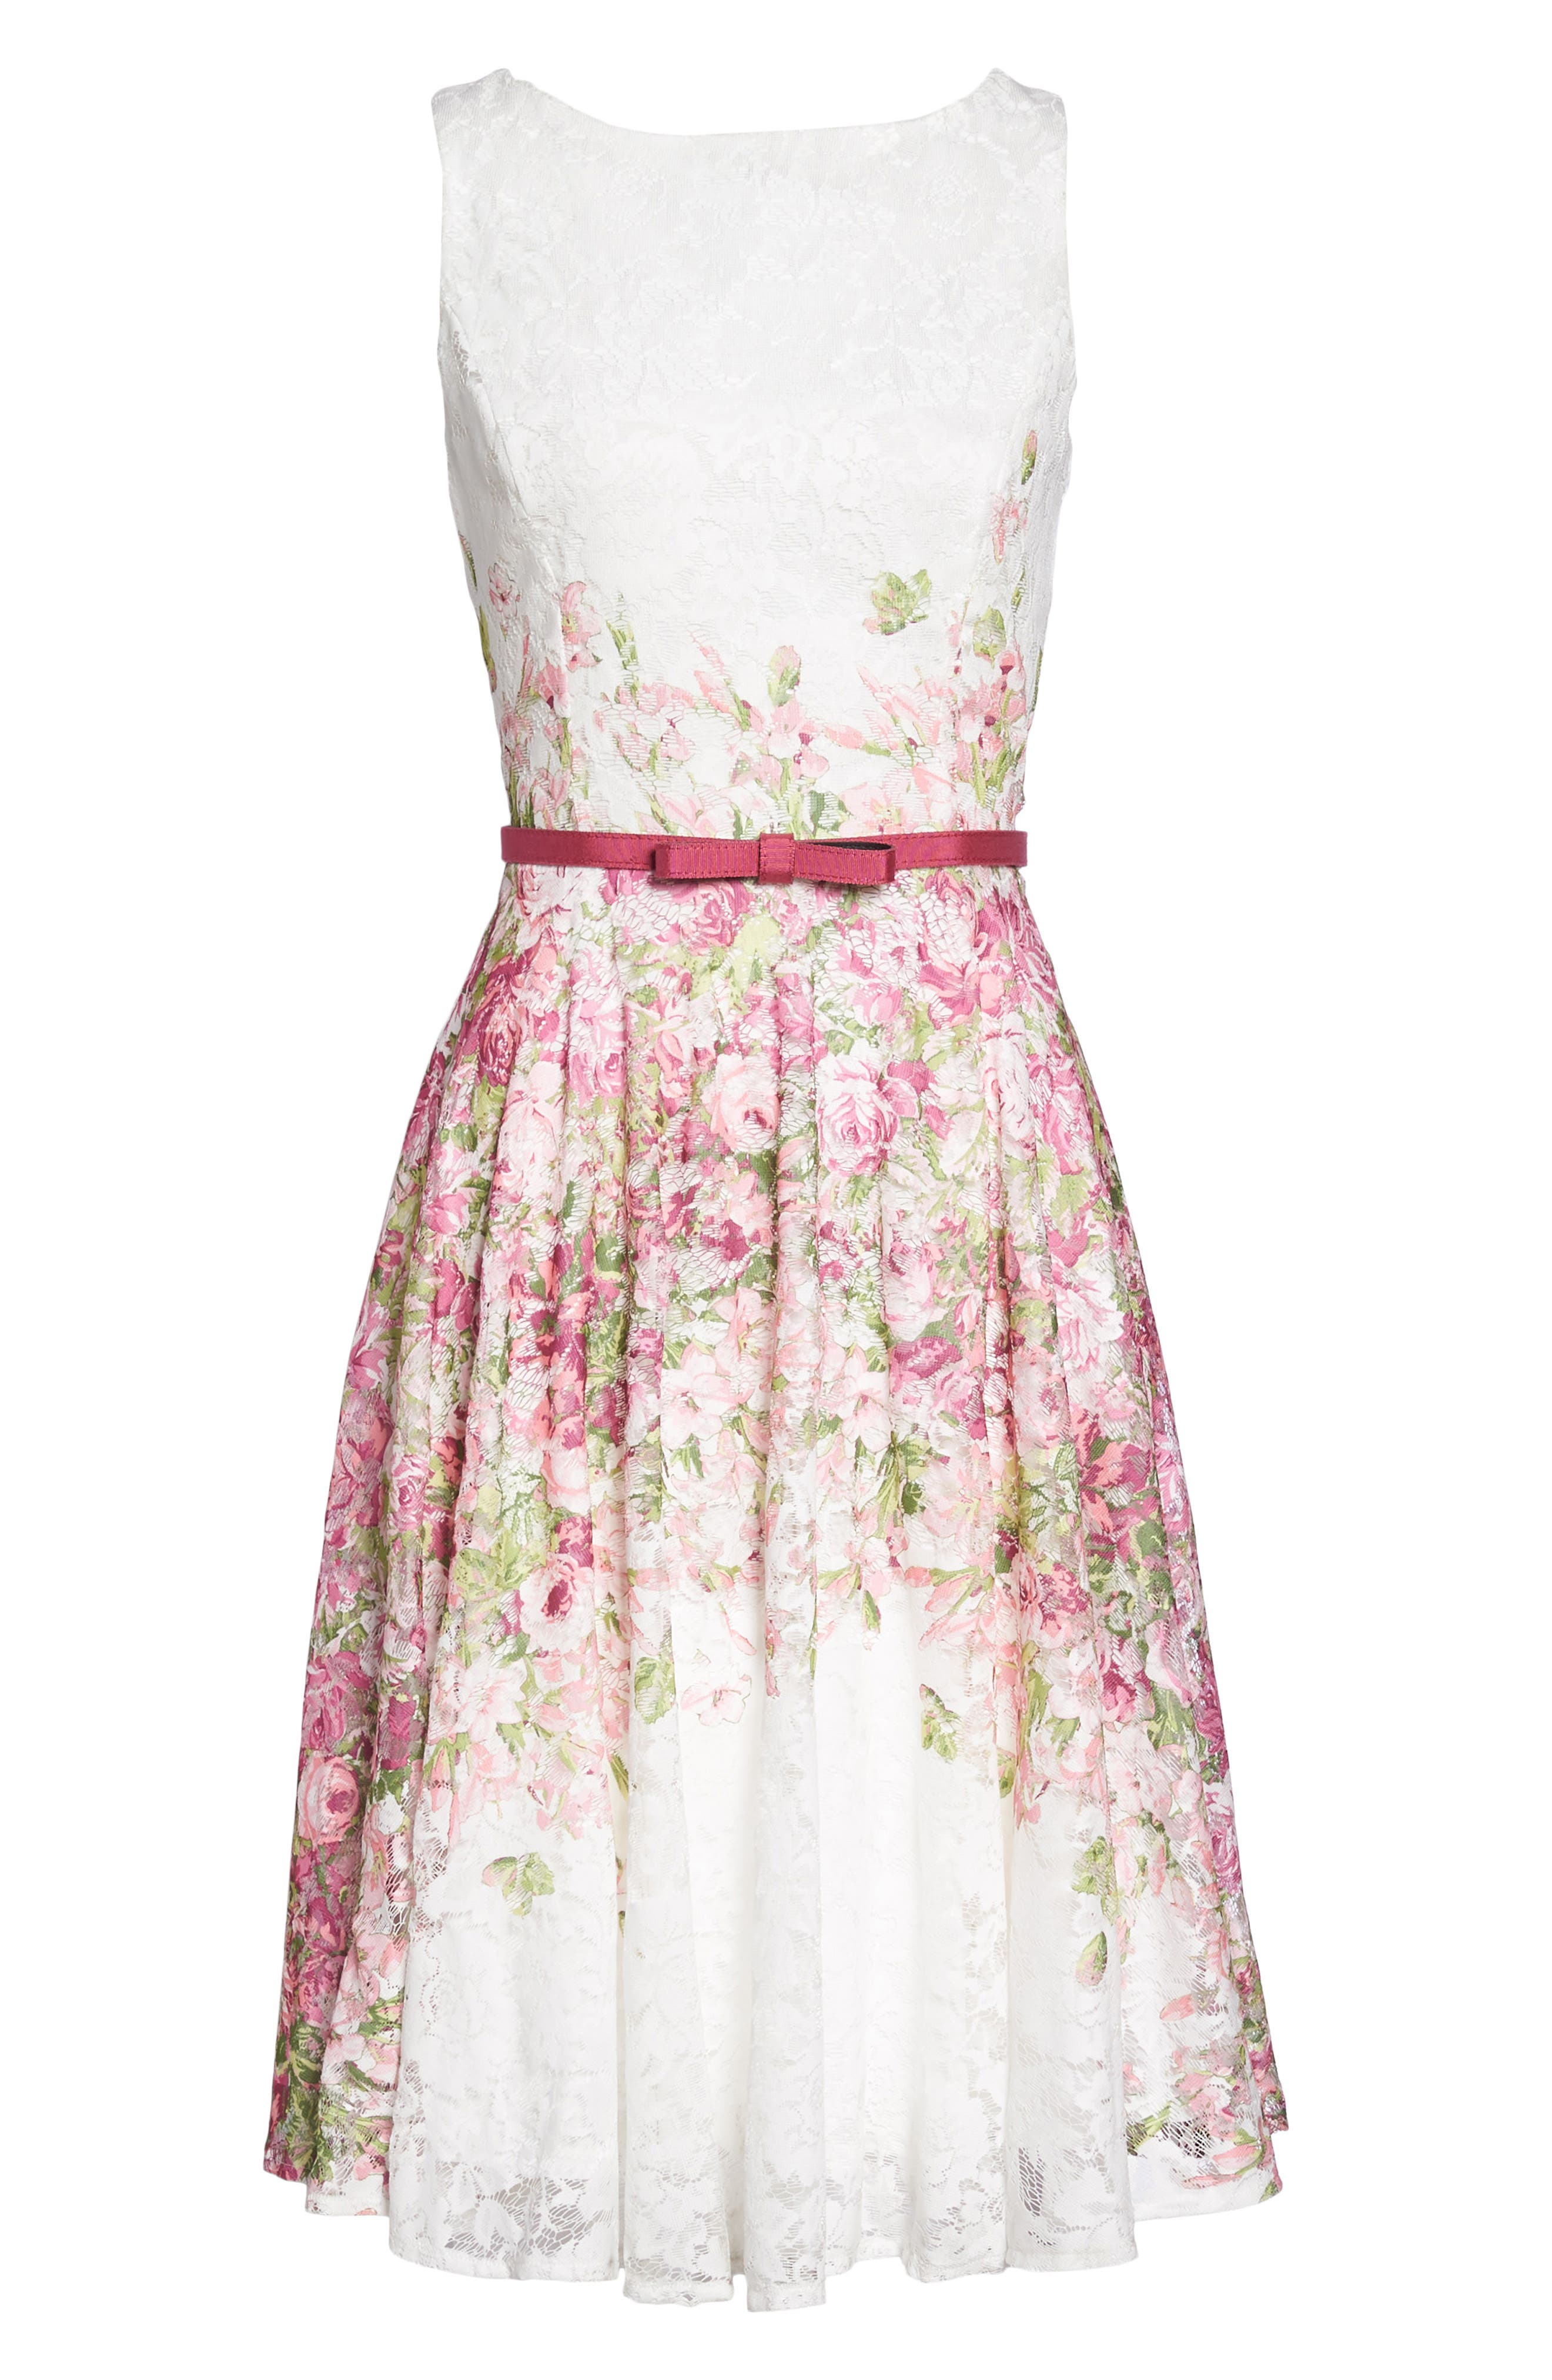 Belted Floral Lace Fit & Flare Dress,                             Alternate thumbnail 6, color,                             Pink Multi